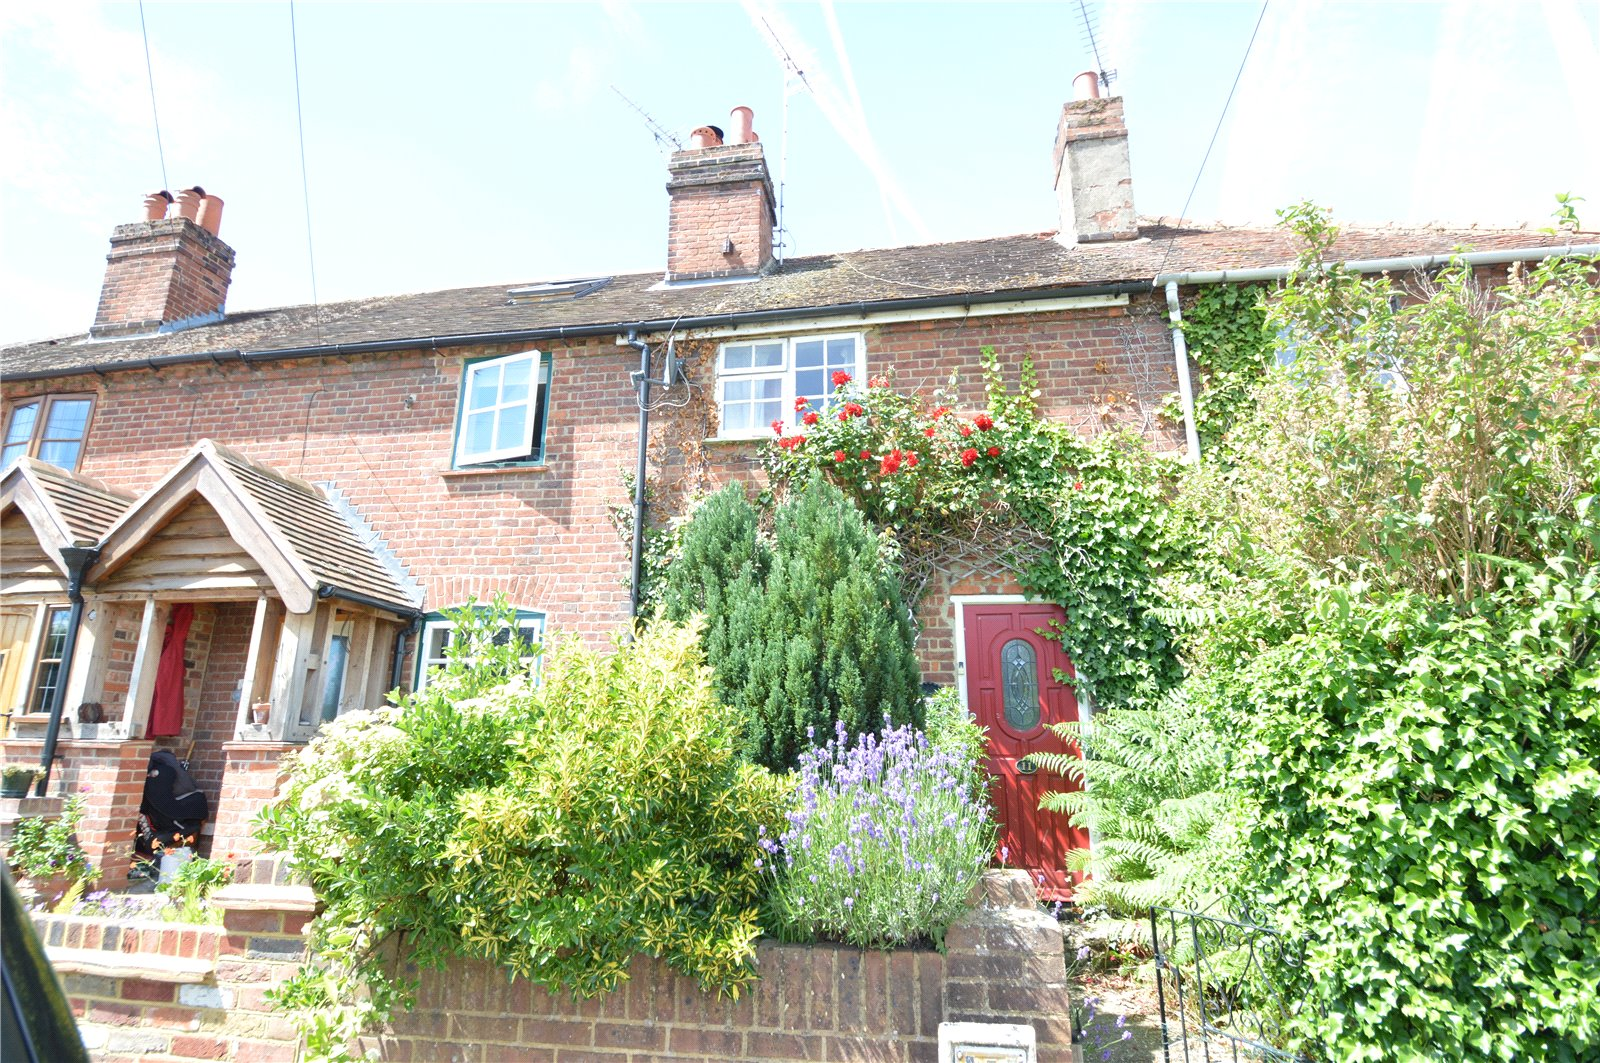 2 Bedrooms Terraced House for sale in North Town Moor, Maidenhead, Berkshire, SL6